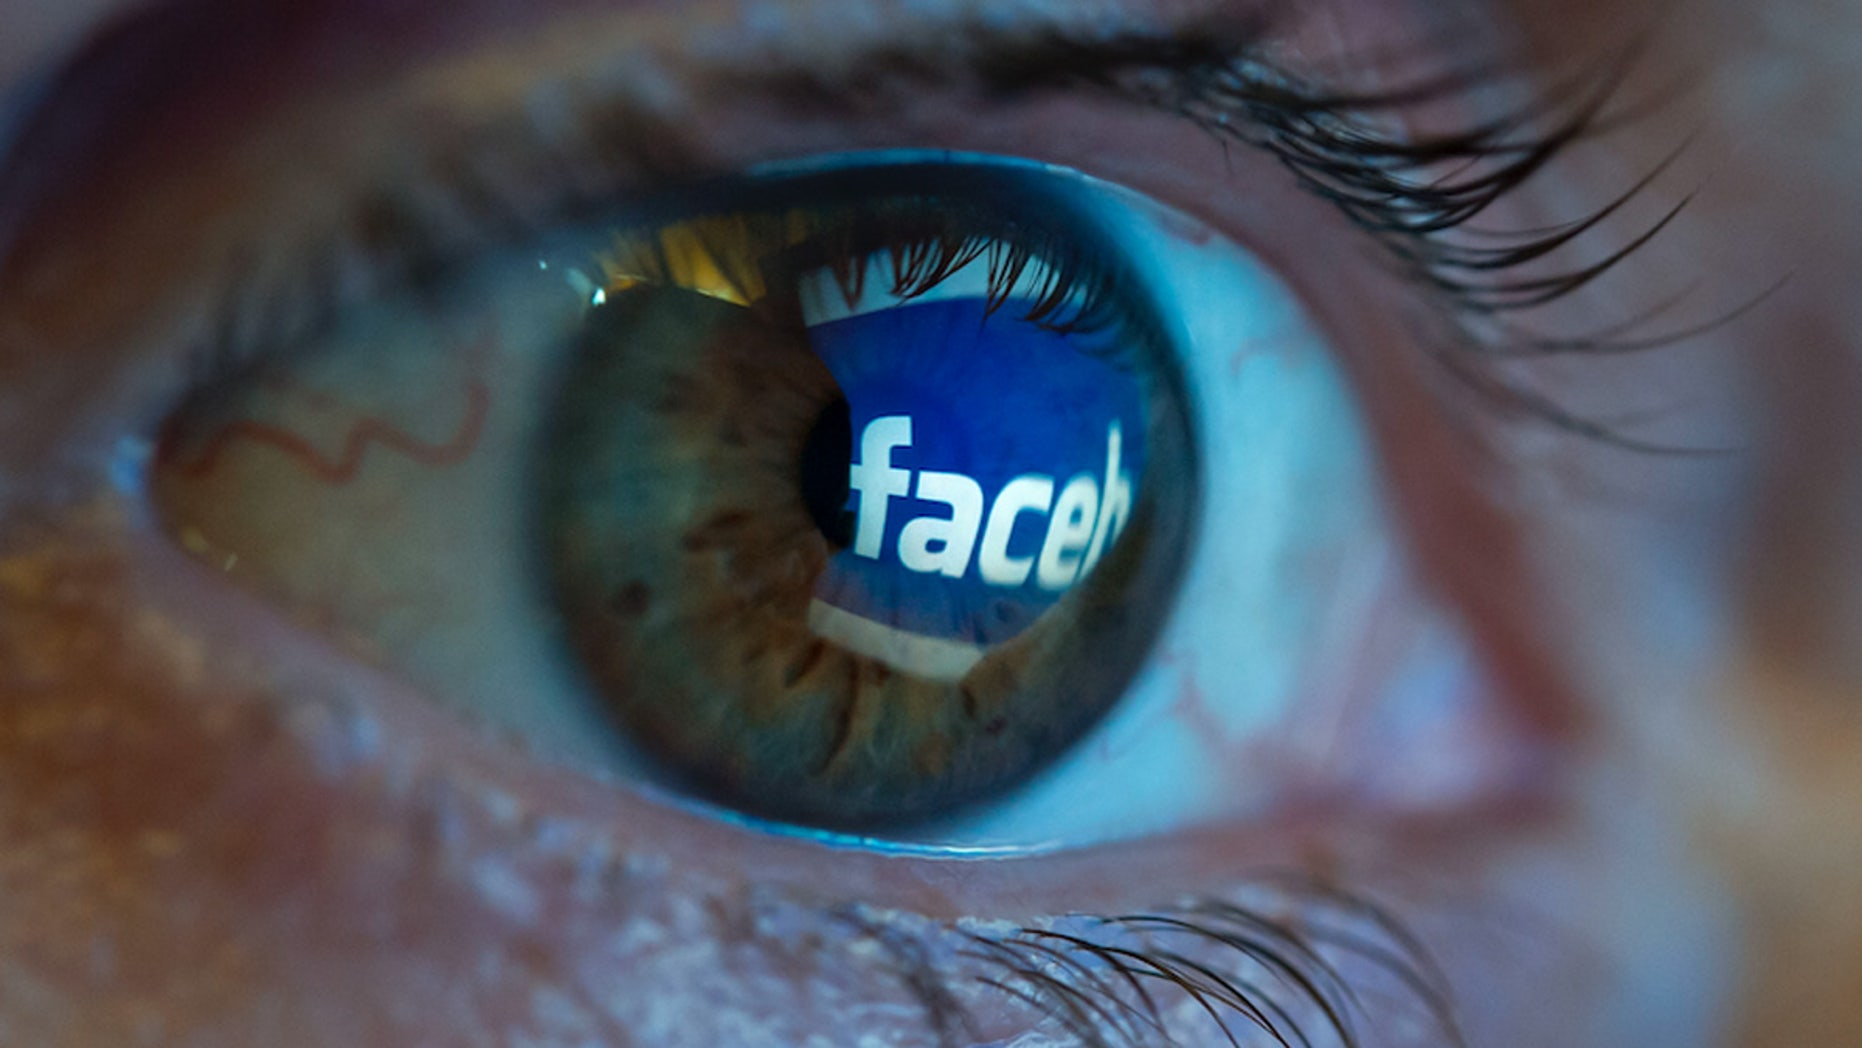 Facebook helped tip off authorities about the sharing of sexually explicit images of minors on its chat platform, Messenger.